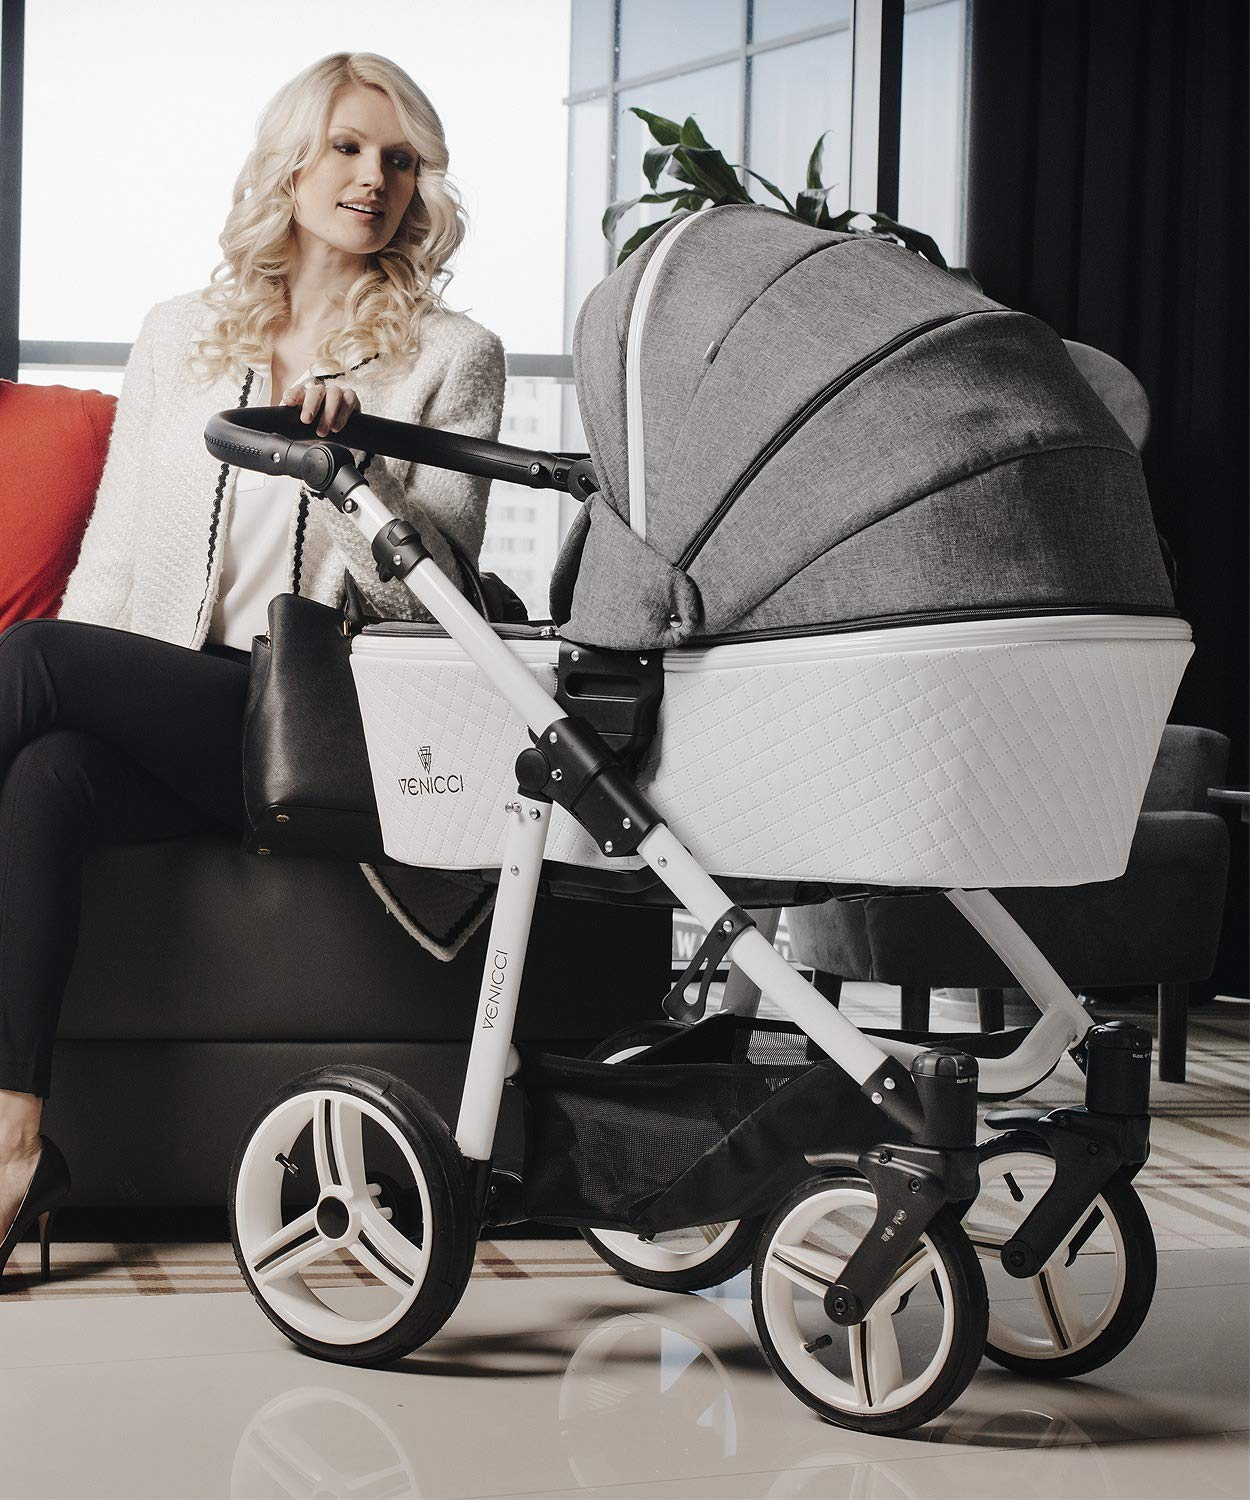 Venicci Pure 3-in-1 Travel System - Denim Grey - with Carrycot + Car Seat + Changing Bag + Apron + Raincover + Mosquito Net + 5-Point Harness and UV 50+ Fabric + Car Seat Adapters + Cup Holder Venicci 3 in 1 Travel System with included Group 0+ Car Seat Suitable for your baby from birth until 36 months 5-point harness to enhance the safety of your child 5